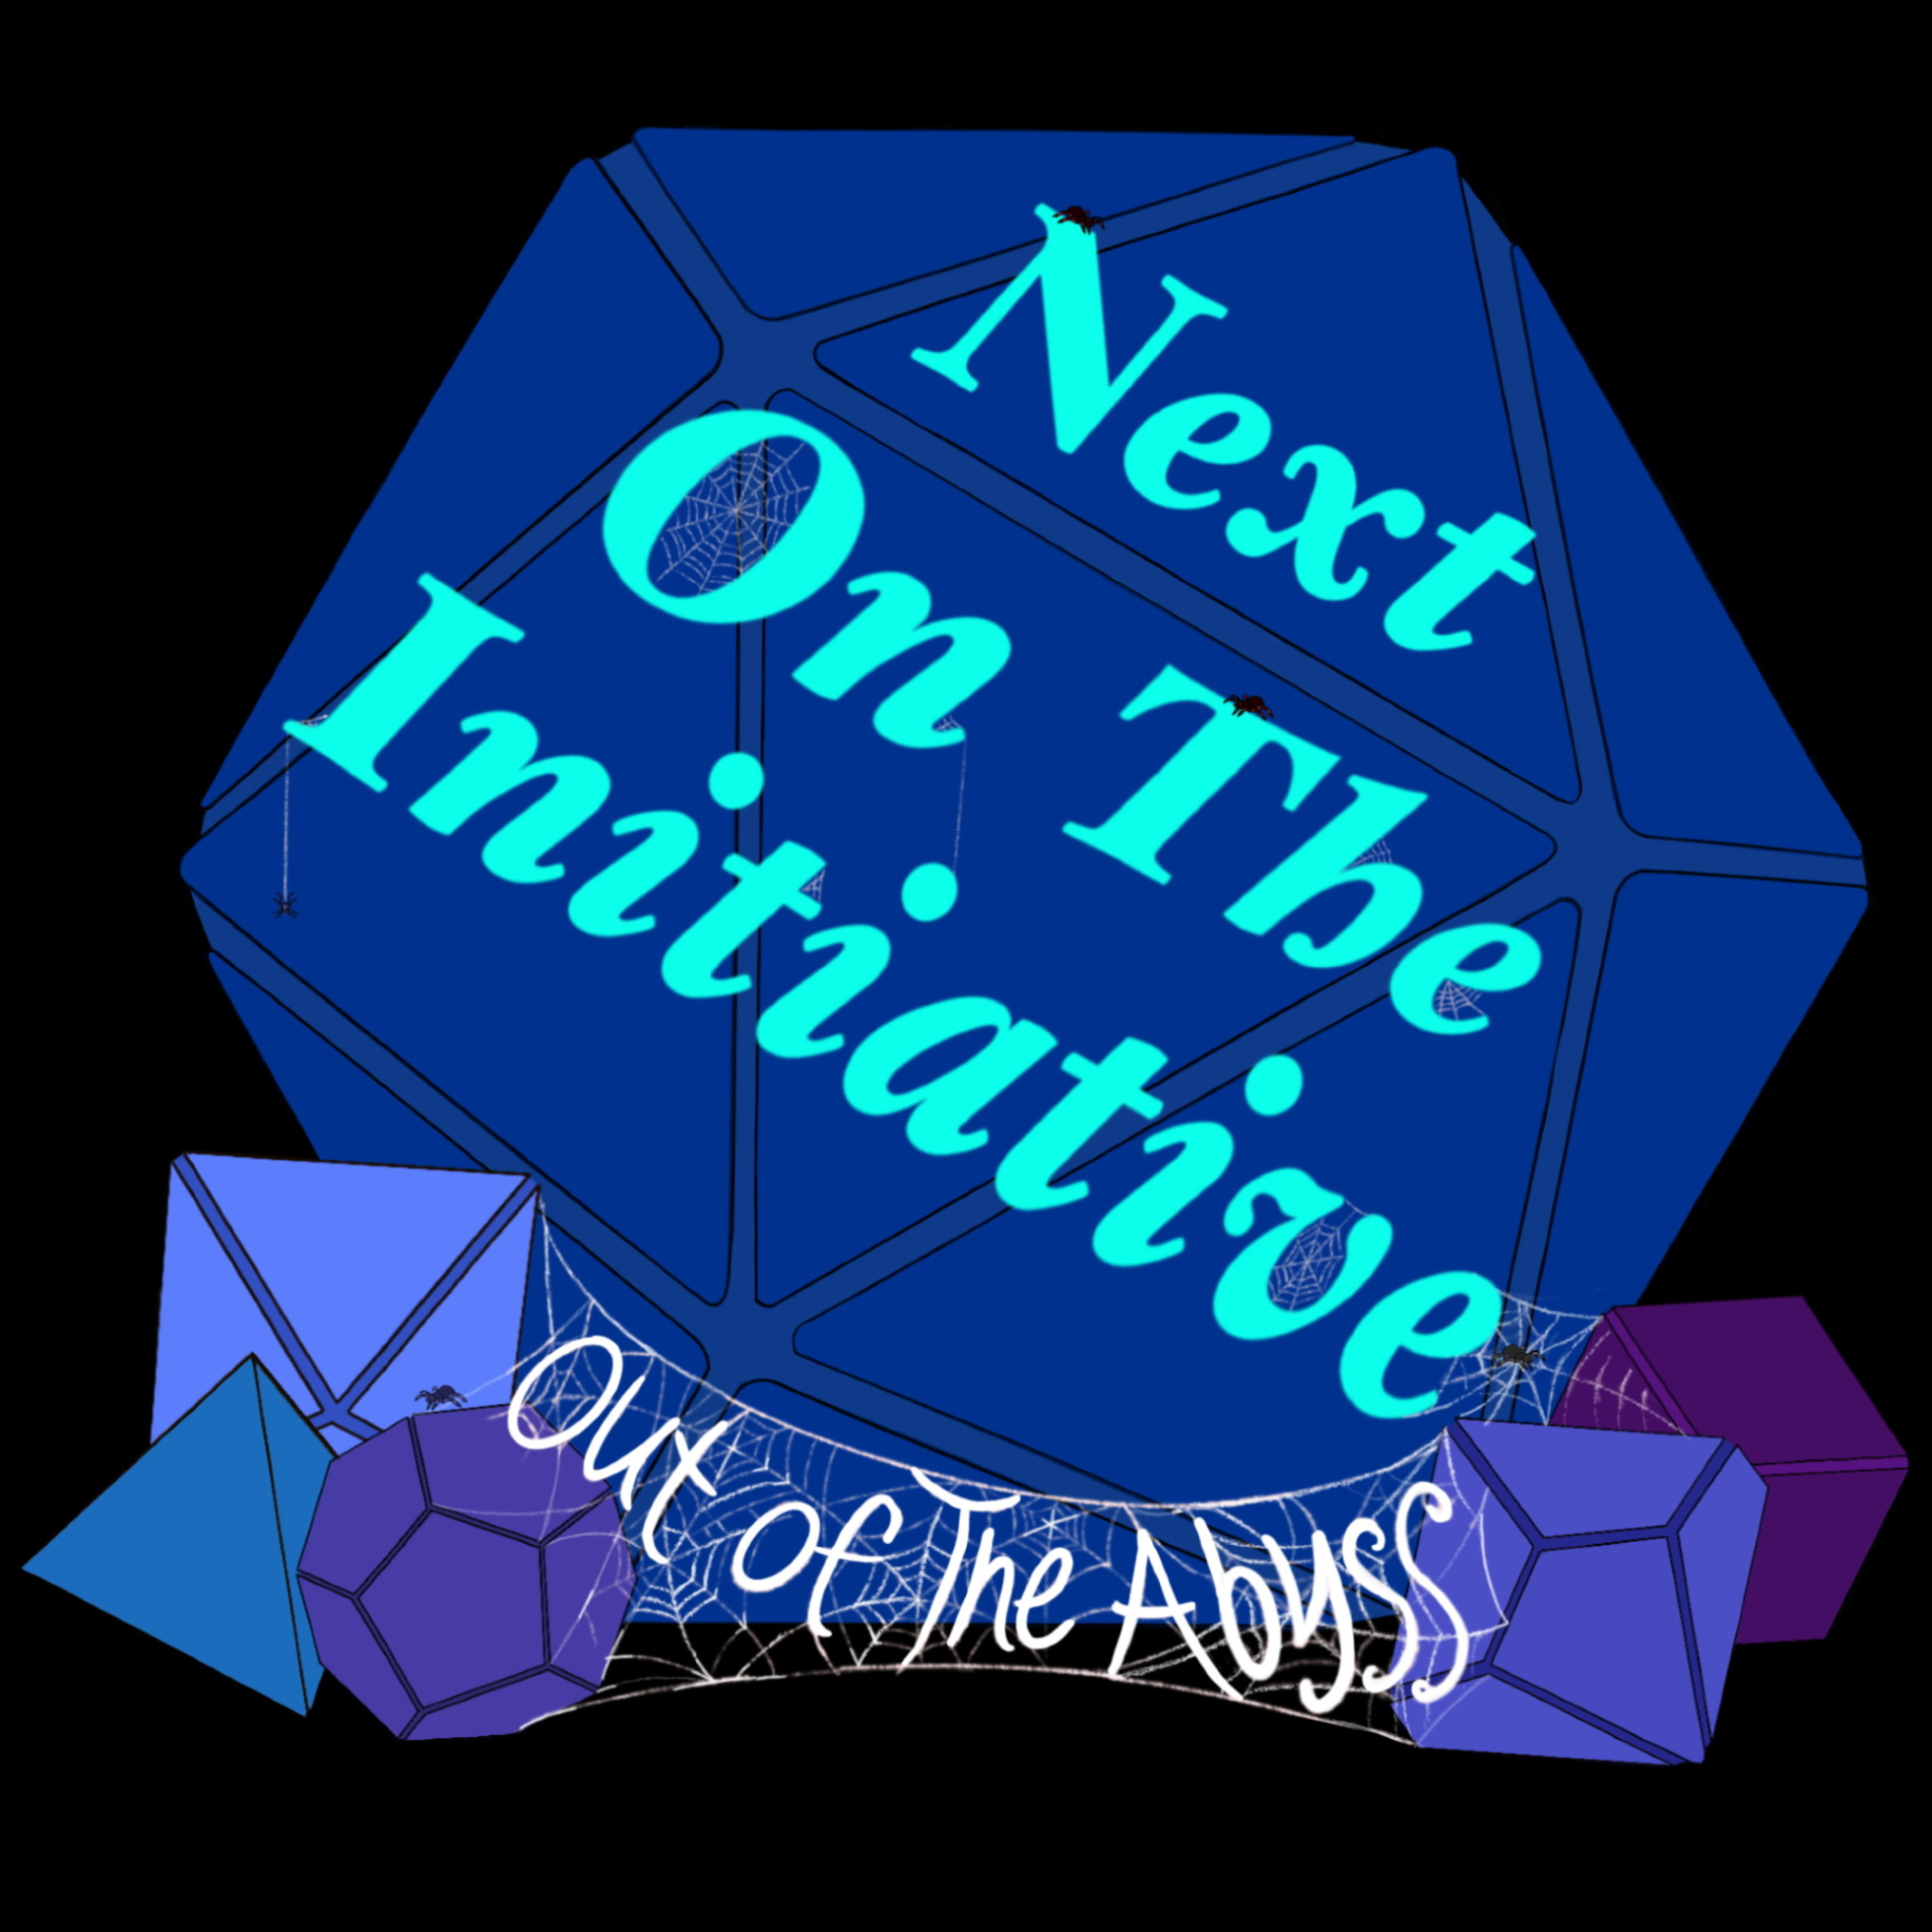 Show artwork for Next On The Initiative